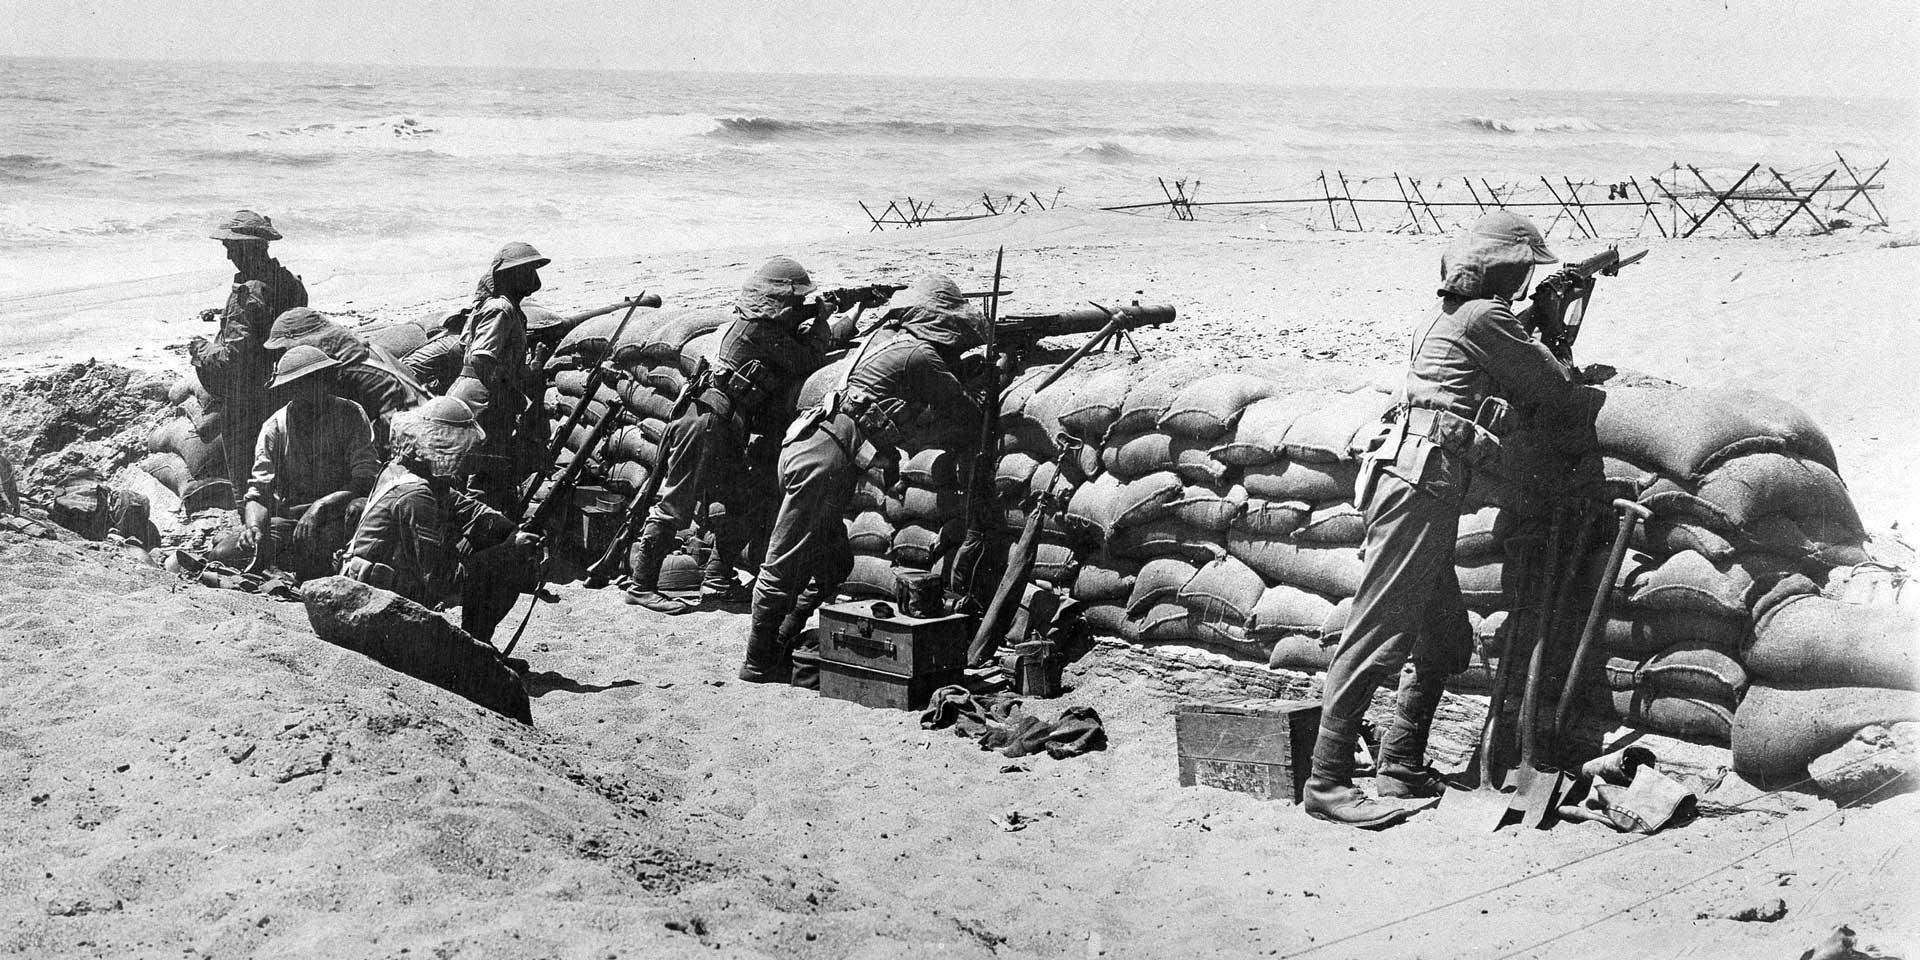 The Black Watch (Royal Highlanders) behind sandbag defences on the coast near Arsuf, 1918